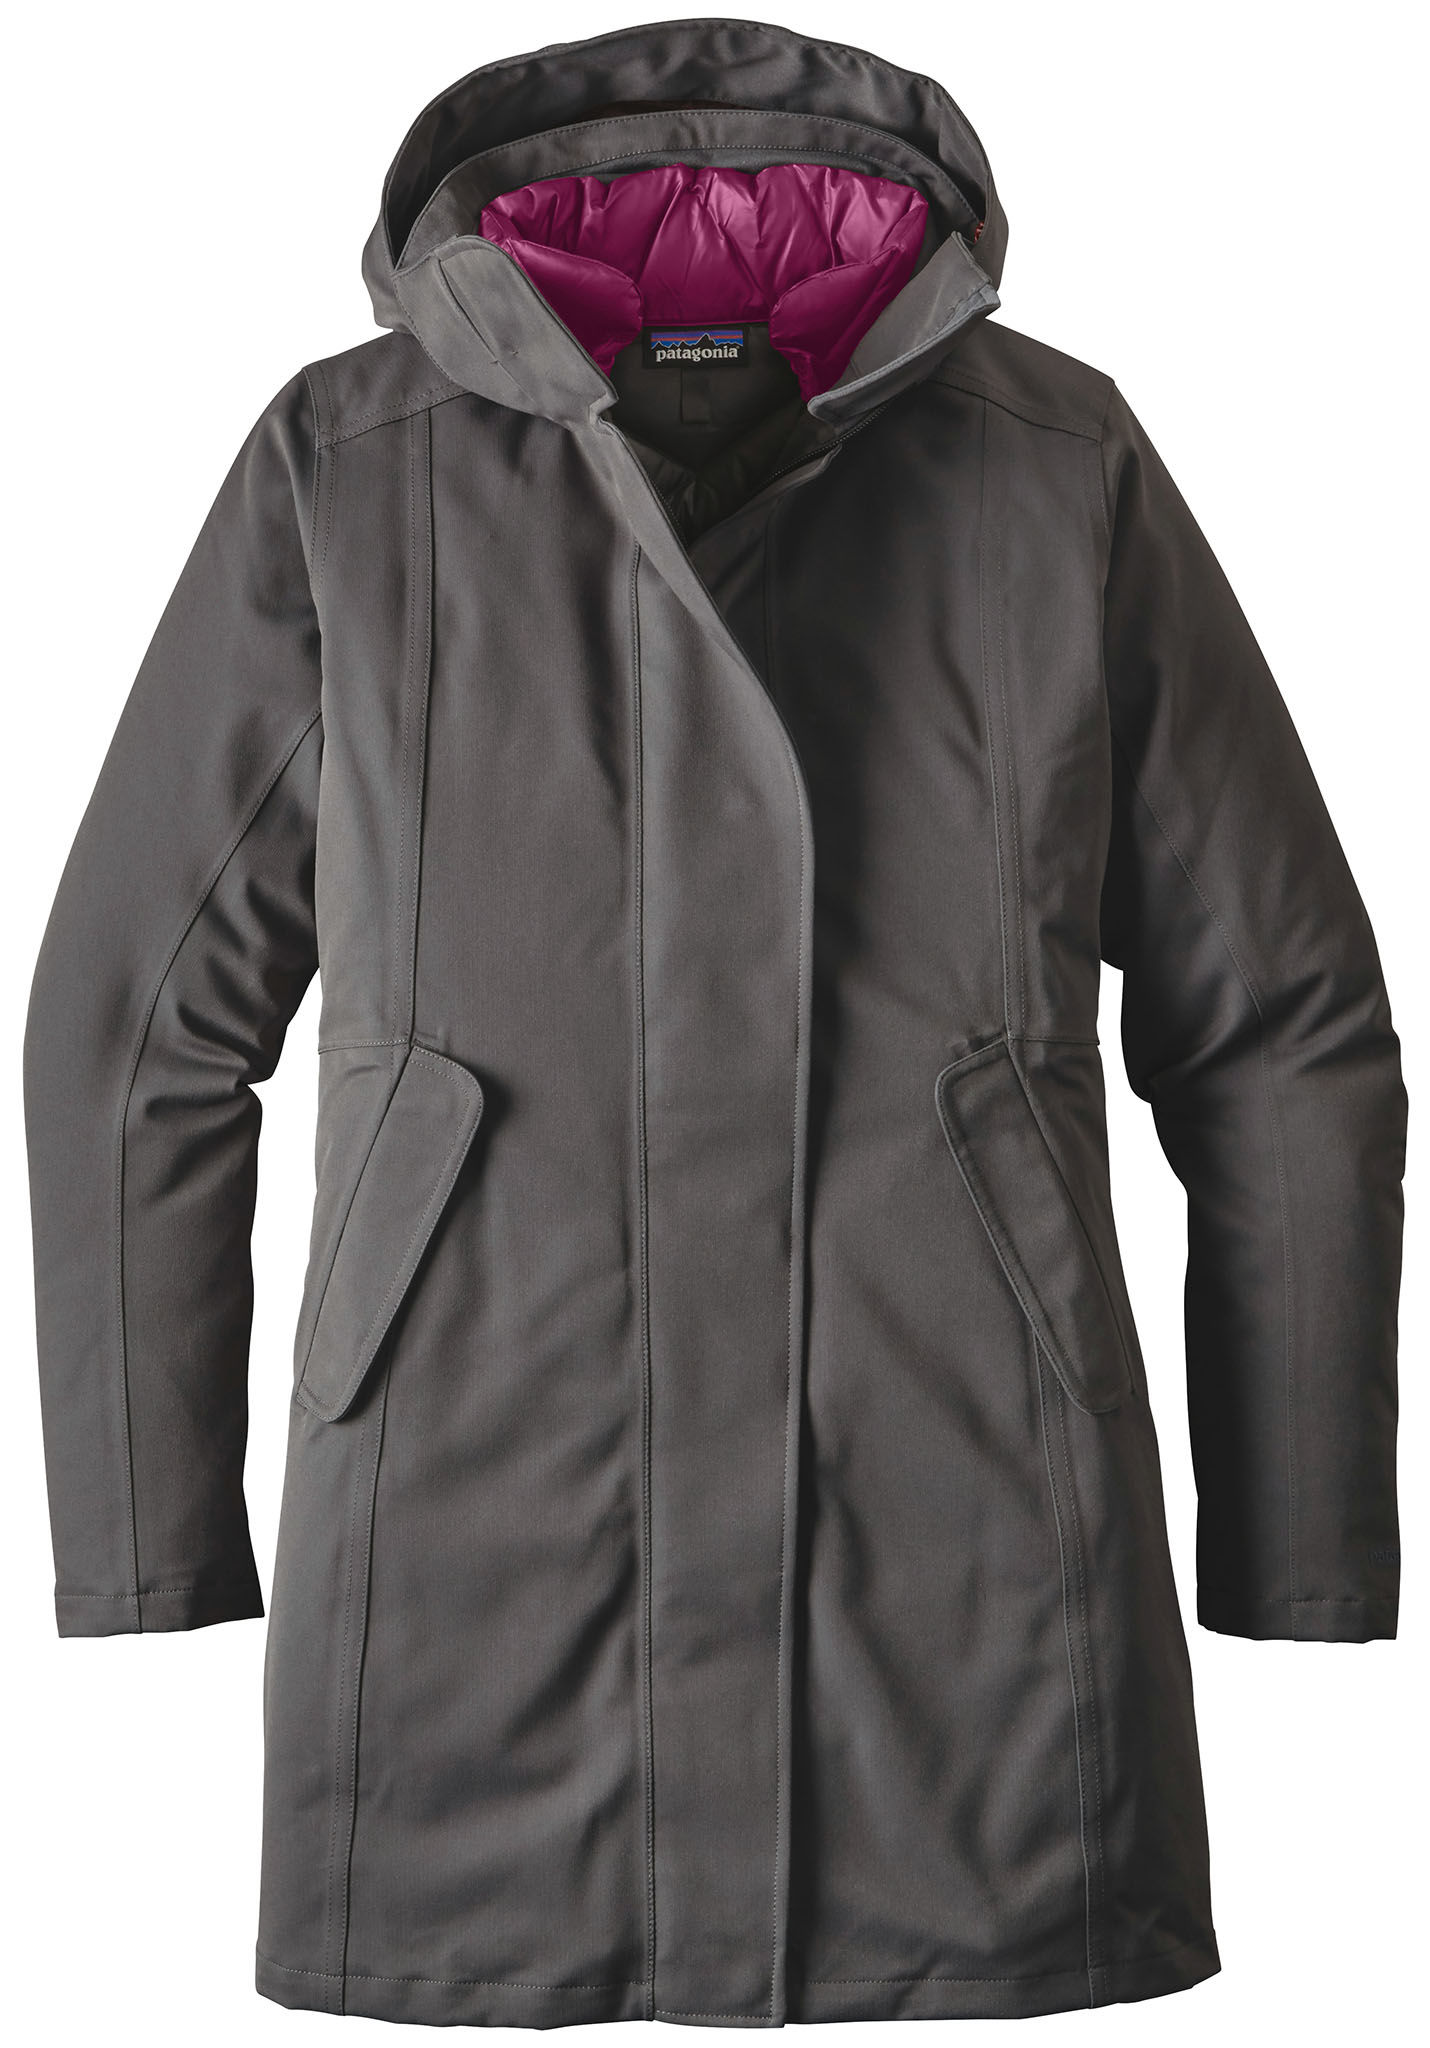 Outdoorjacke 3 in 1 damen